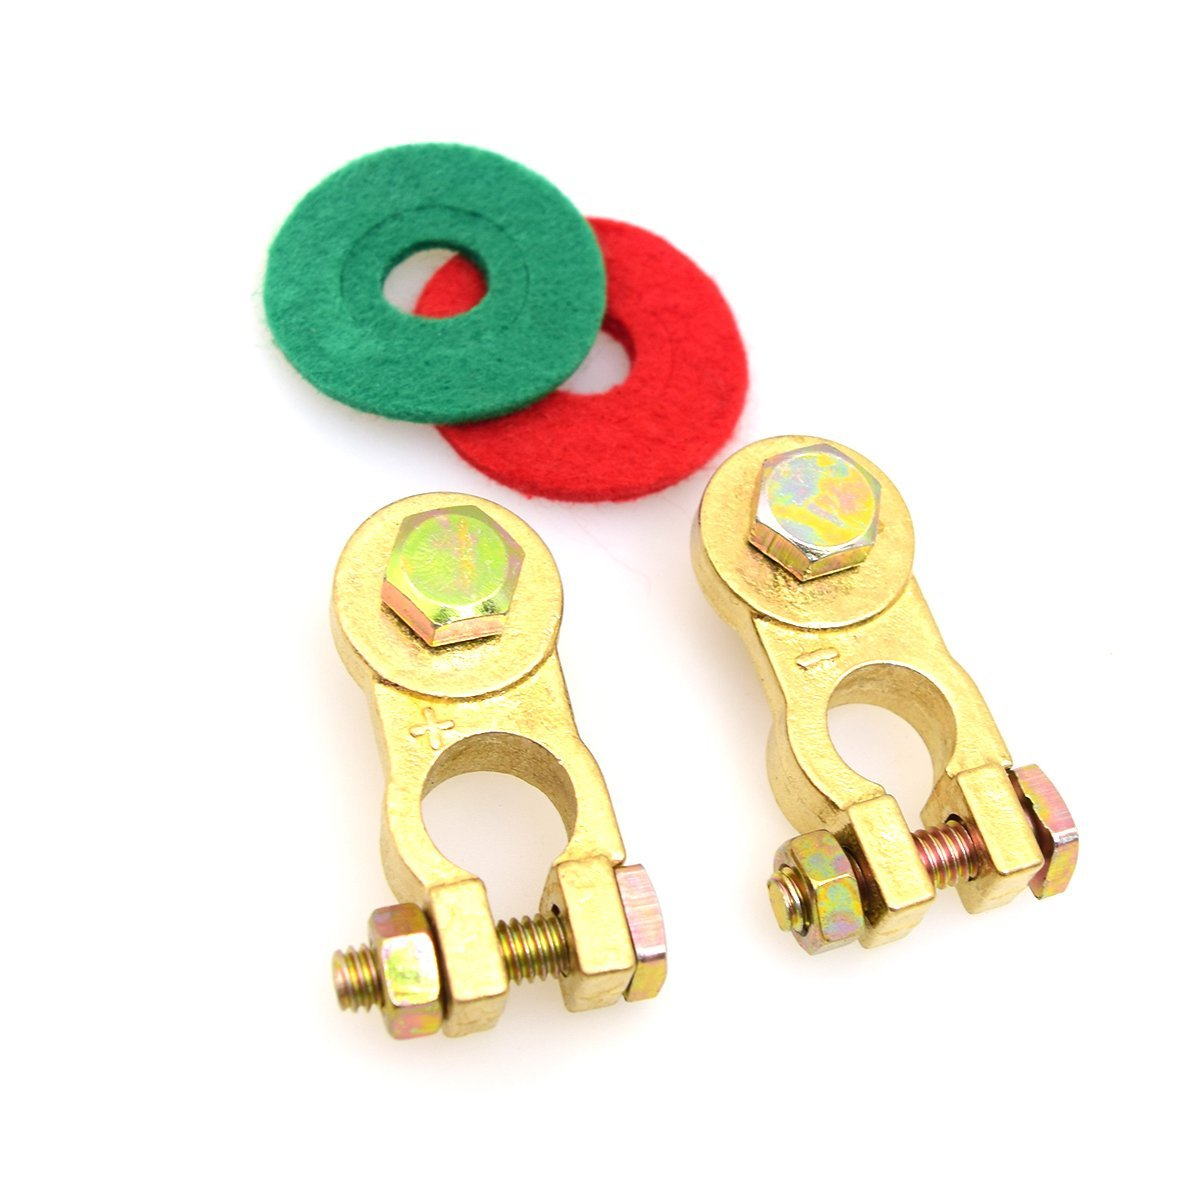 Marine Featured Coated Wing Nuts 17mm 200A E-KYLIN Pure Copper Battery Terminal Kit with Battery Corrosion Terminal Protectors